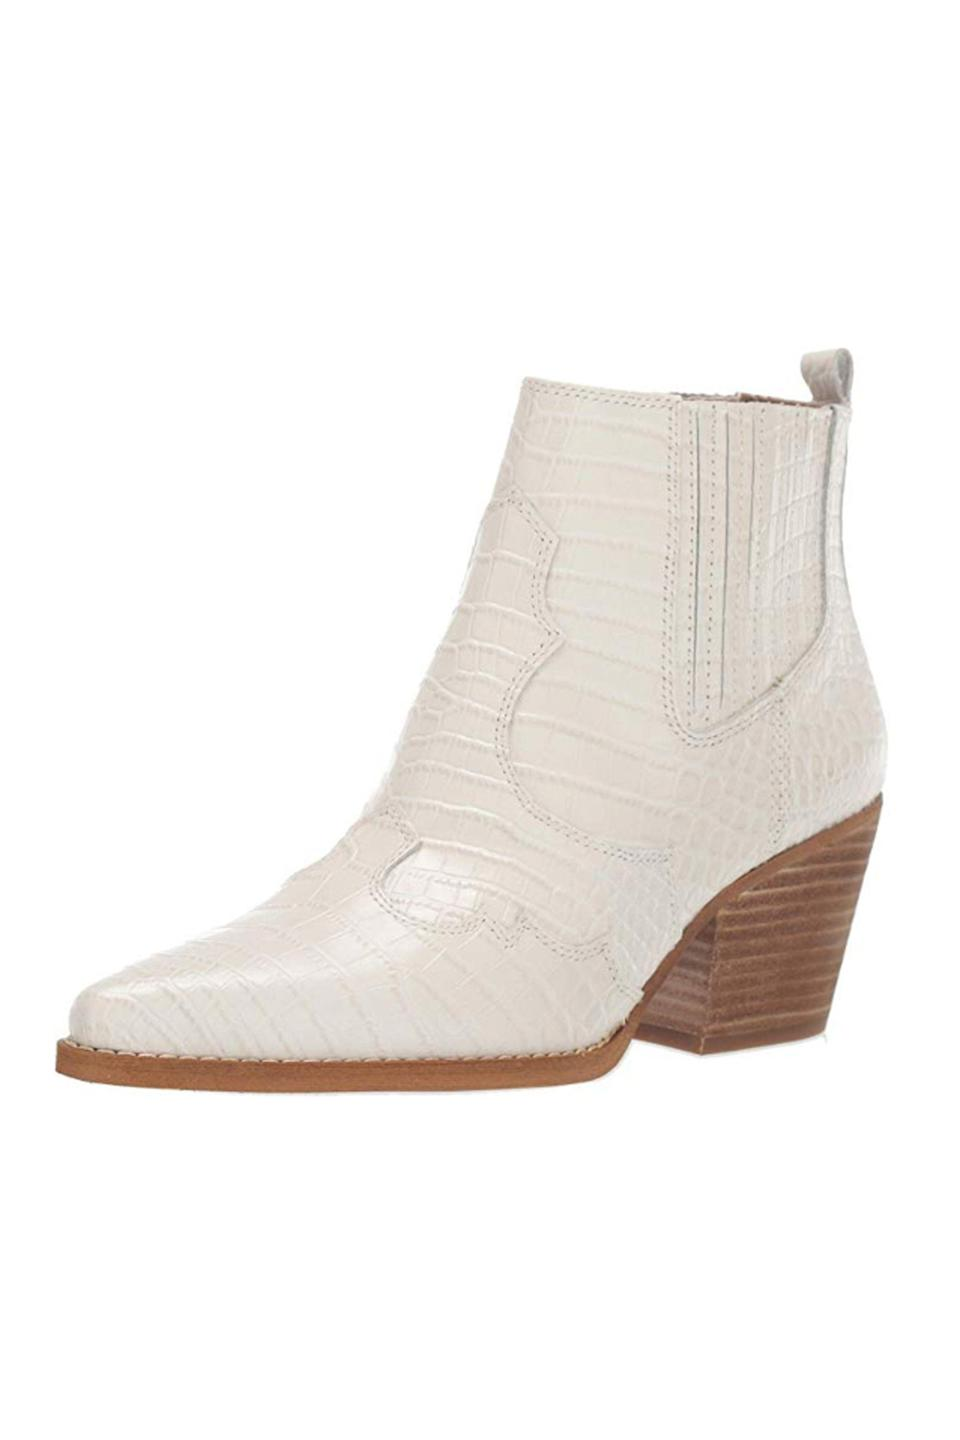 """<p><strong>Sam Edelman</strong></p><p>amazon.com</p><p><strong>$72.00</strong></p><p><a href=""""https://www.amazon.com/dp/B07TPZK3Z3?tag=syn-yahoo-20&ascsubtag=%5Bartid%7C10049.g.13602855%5Bsrc%7Cyahoo-us"""" rel=""""nofollow noopener"""" target=""""_blank"""" data-ylk=""""slk:Shop Now"""" class=""""link rapid-noclick-resp"""">Shop Now</a></p><p>Time to say yee-effing-haw and get 'em these stylish boots that lean way into the Western trend you're seeing everywhere.</p>"""